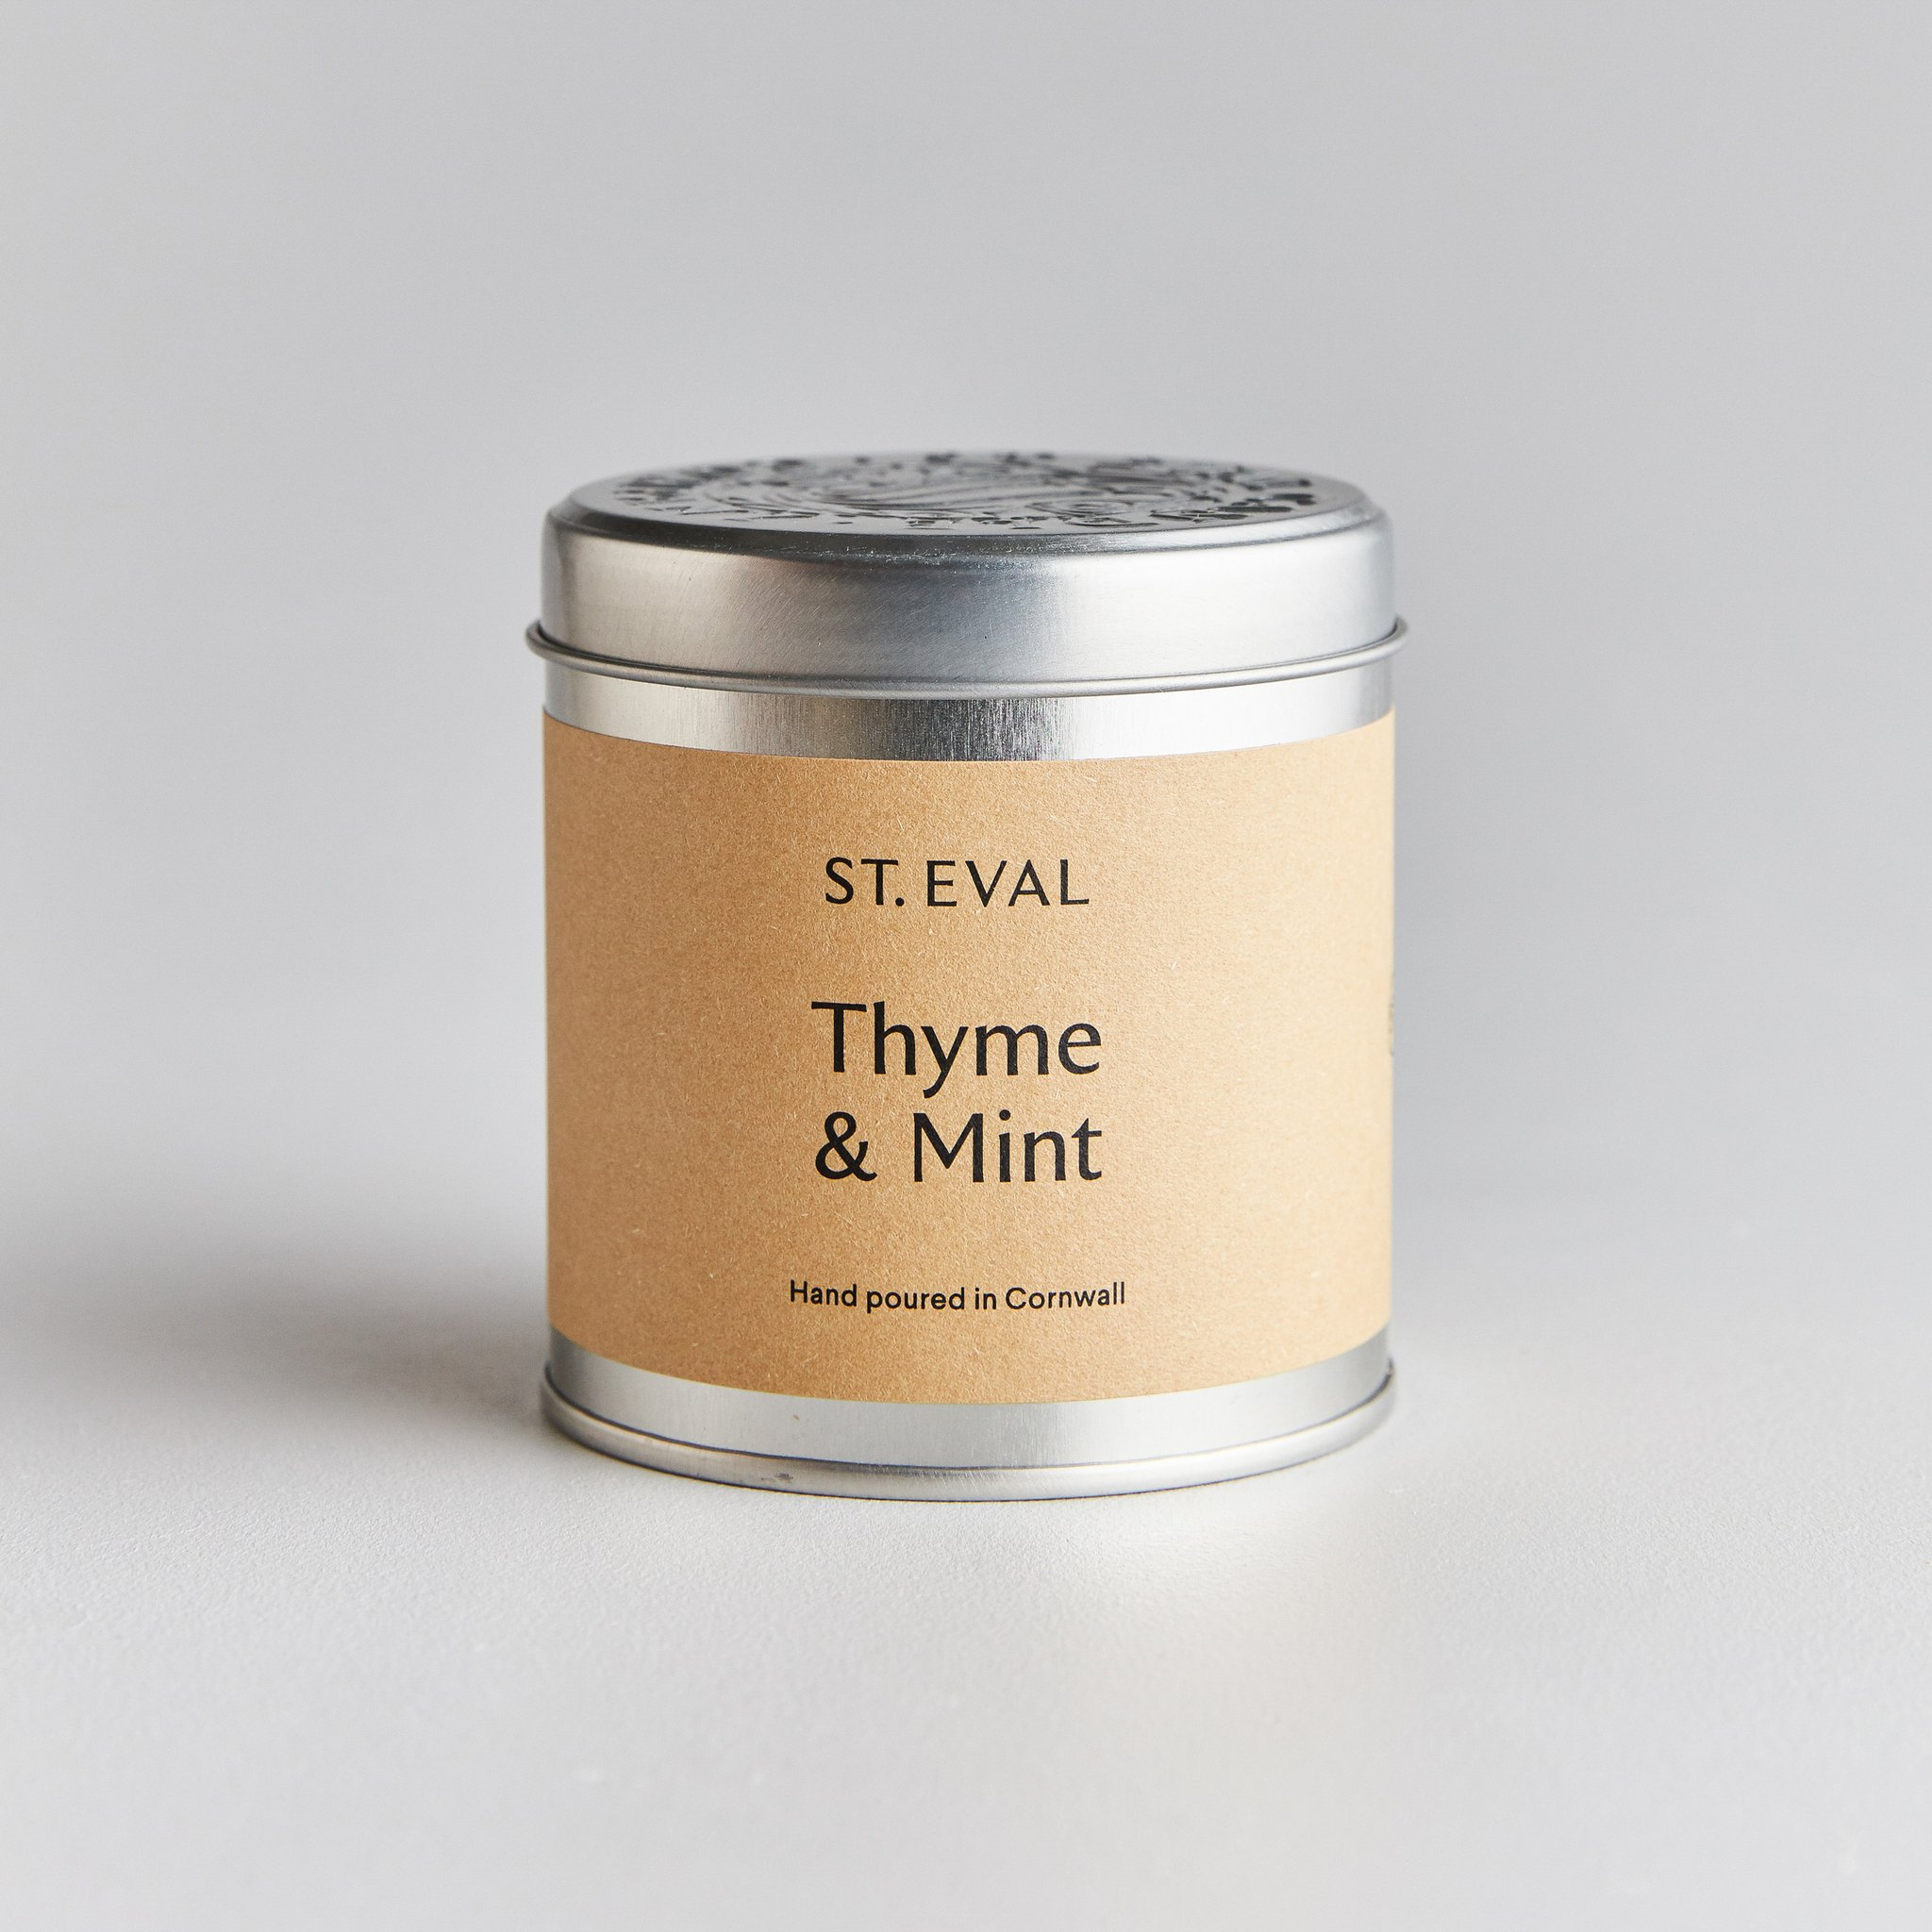 St Eval Candle Tin - Thyme & Mint